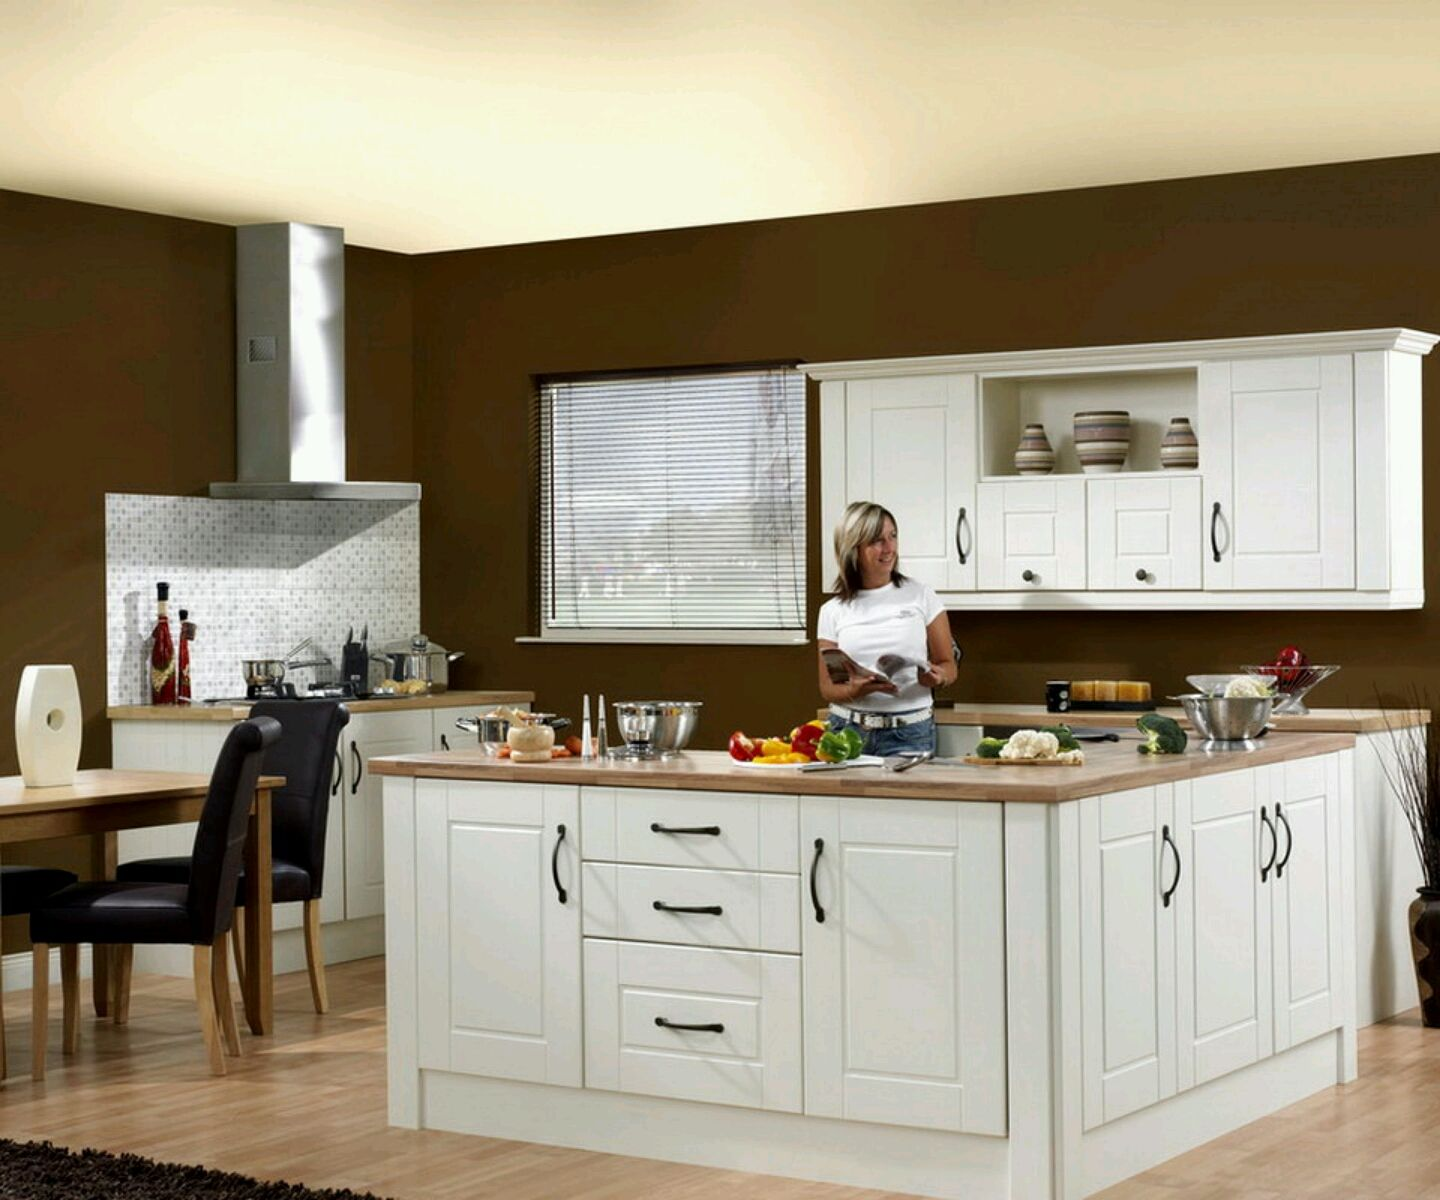 Home Designs Latest | Recently Modern Homes Ultra Modern Kitchen .